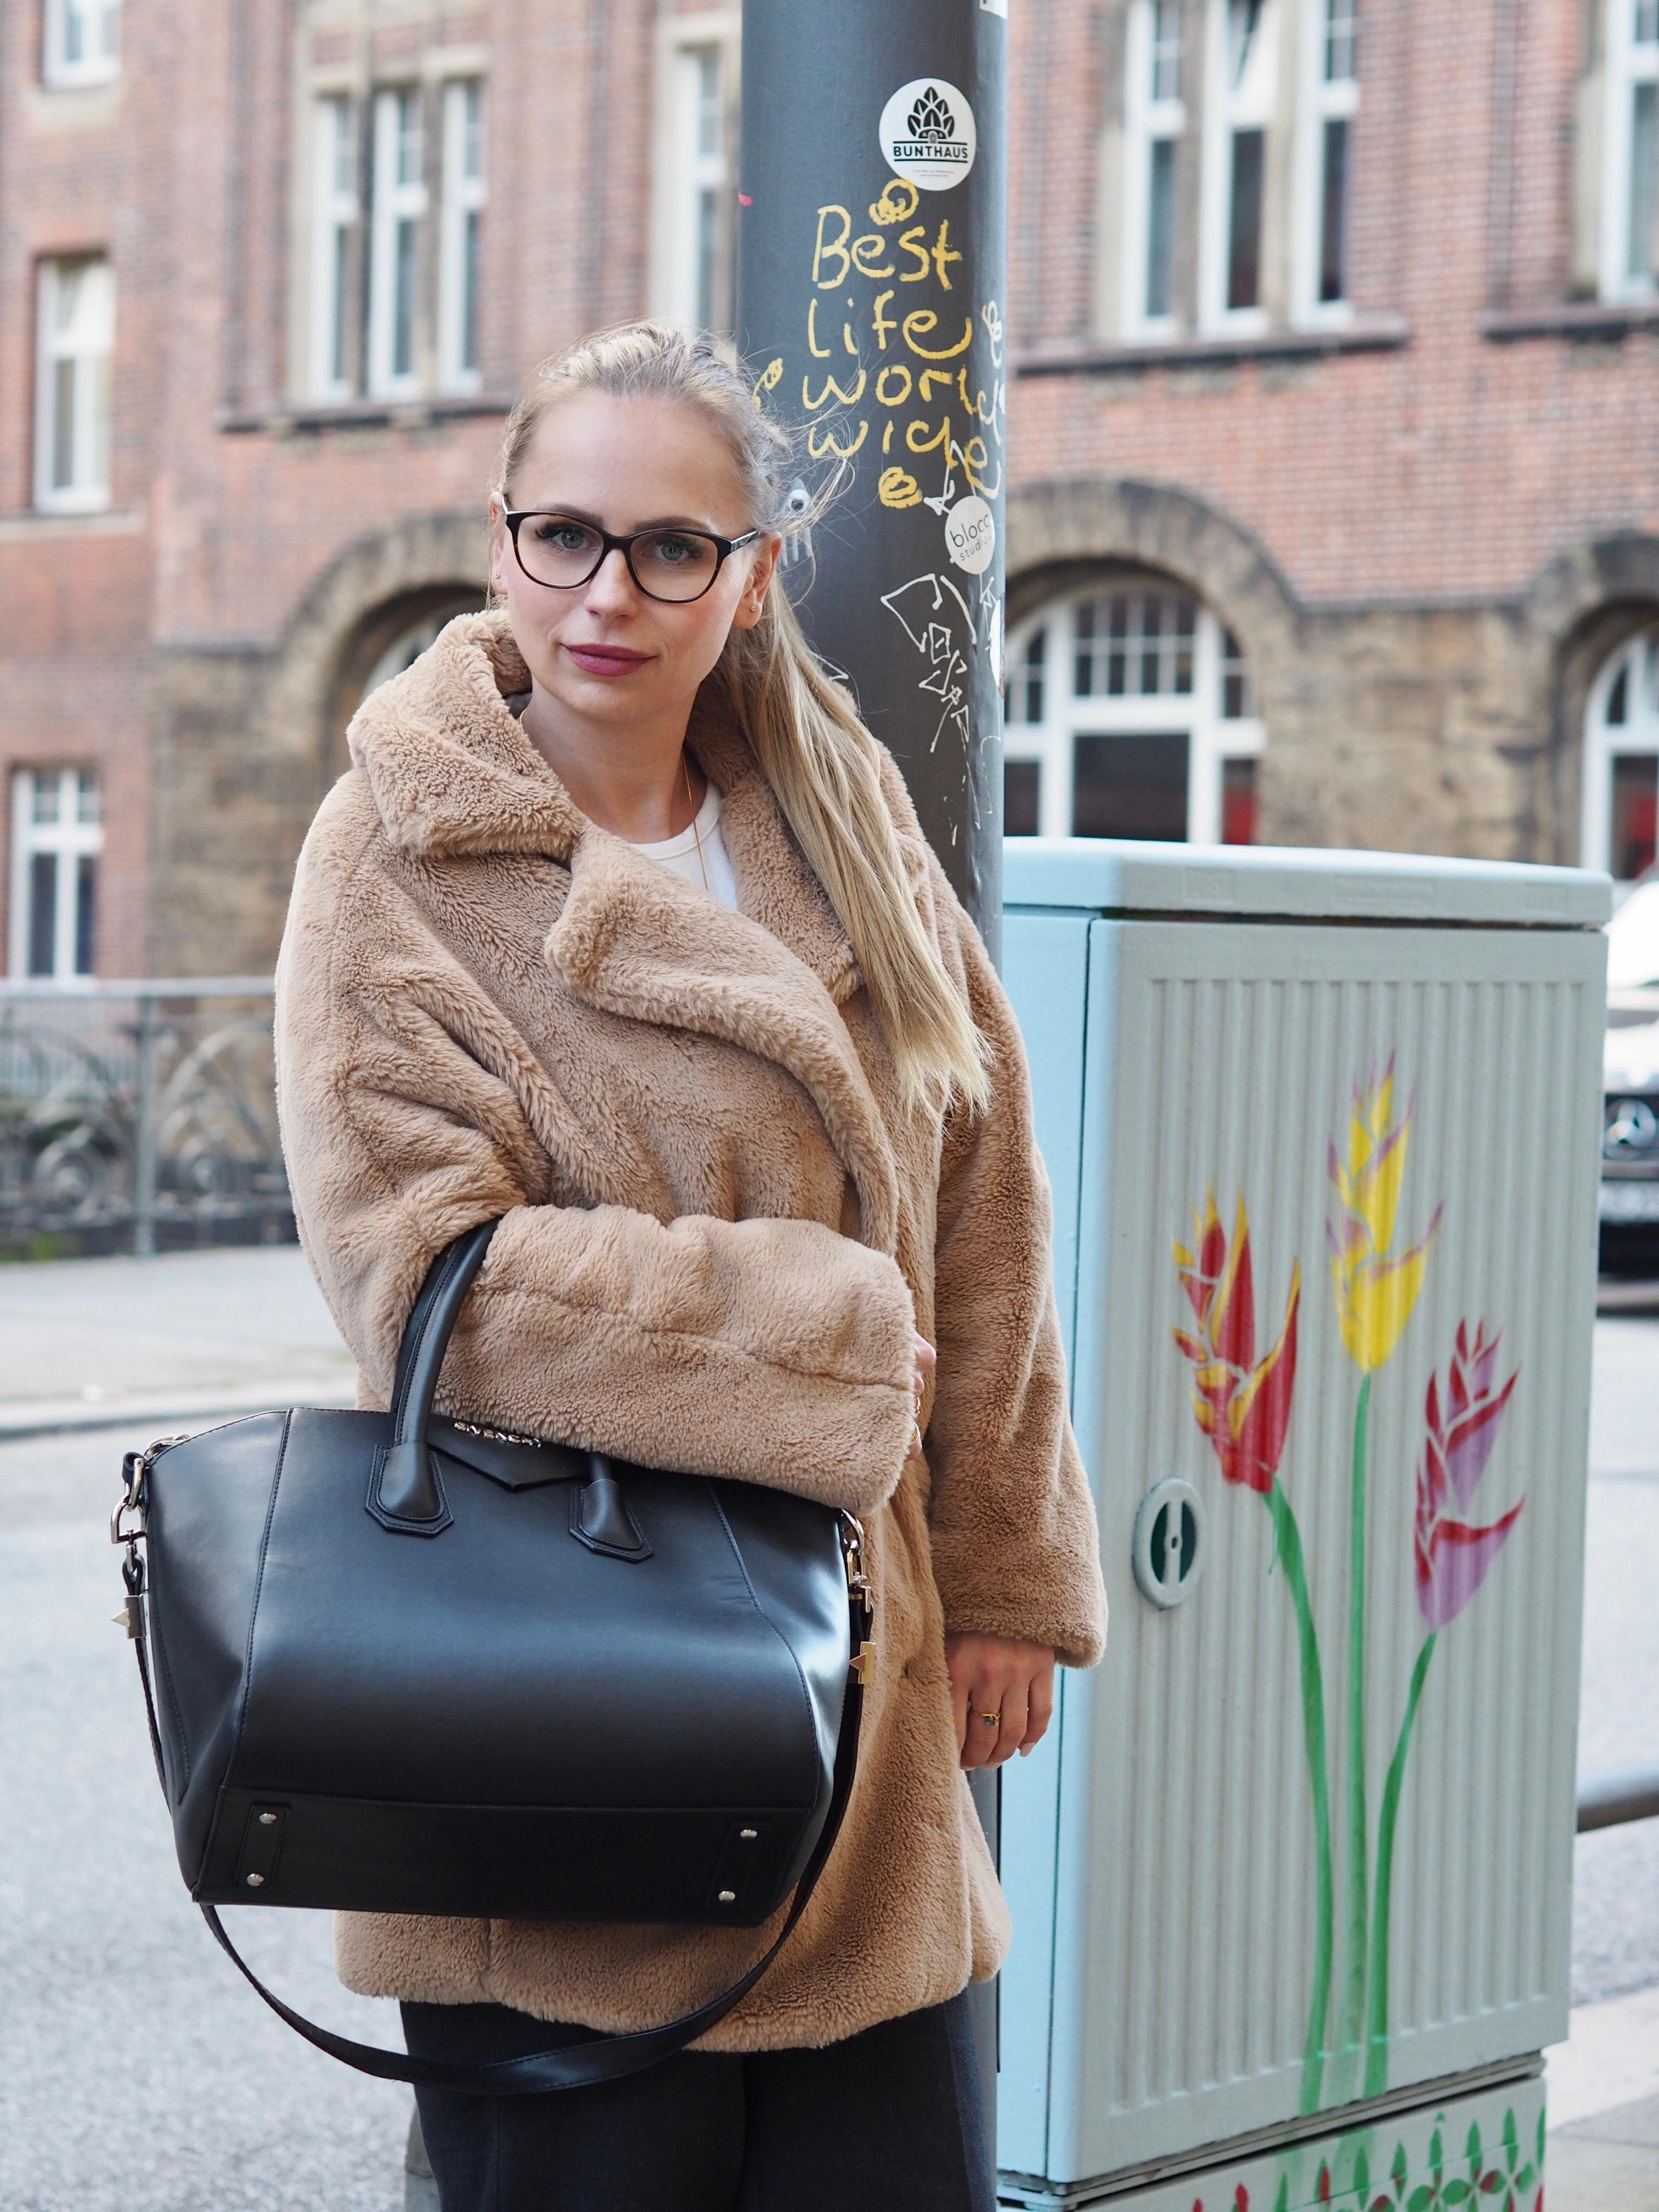 Teddycoat flauschiger gehts nicht  ootd brille handtasche givenchy fashion aschblond outfit  2ce18bbc 22b2 407e 8063 cdf9ef392e86